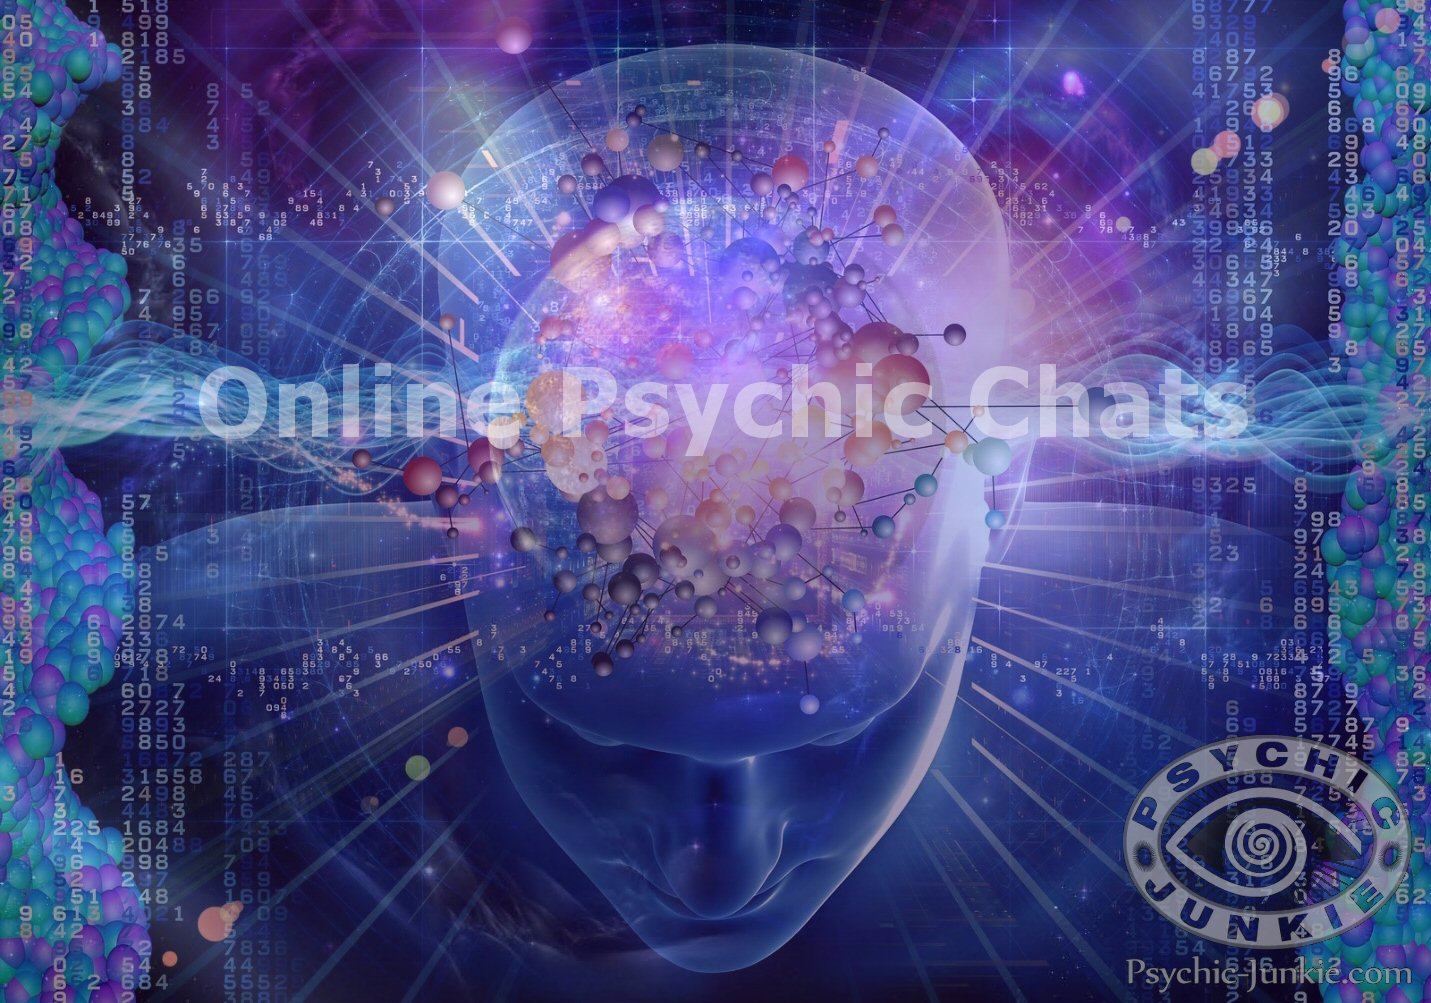 Top 7 Platforms for Online Psychic Chats